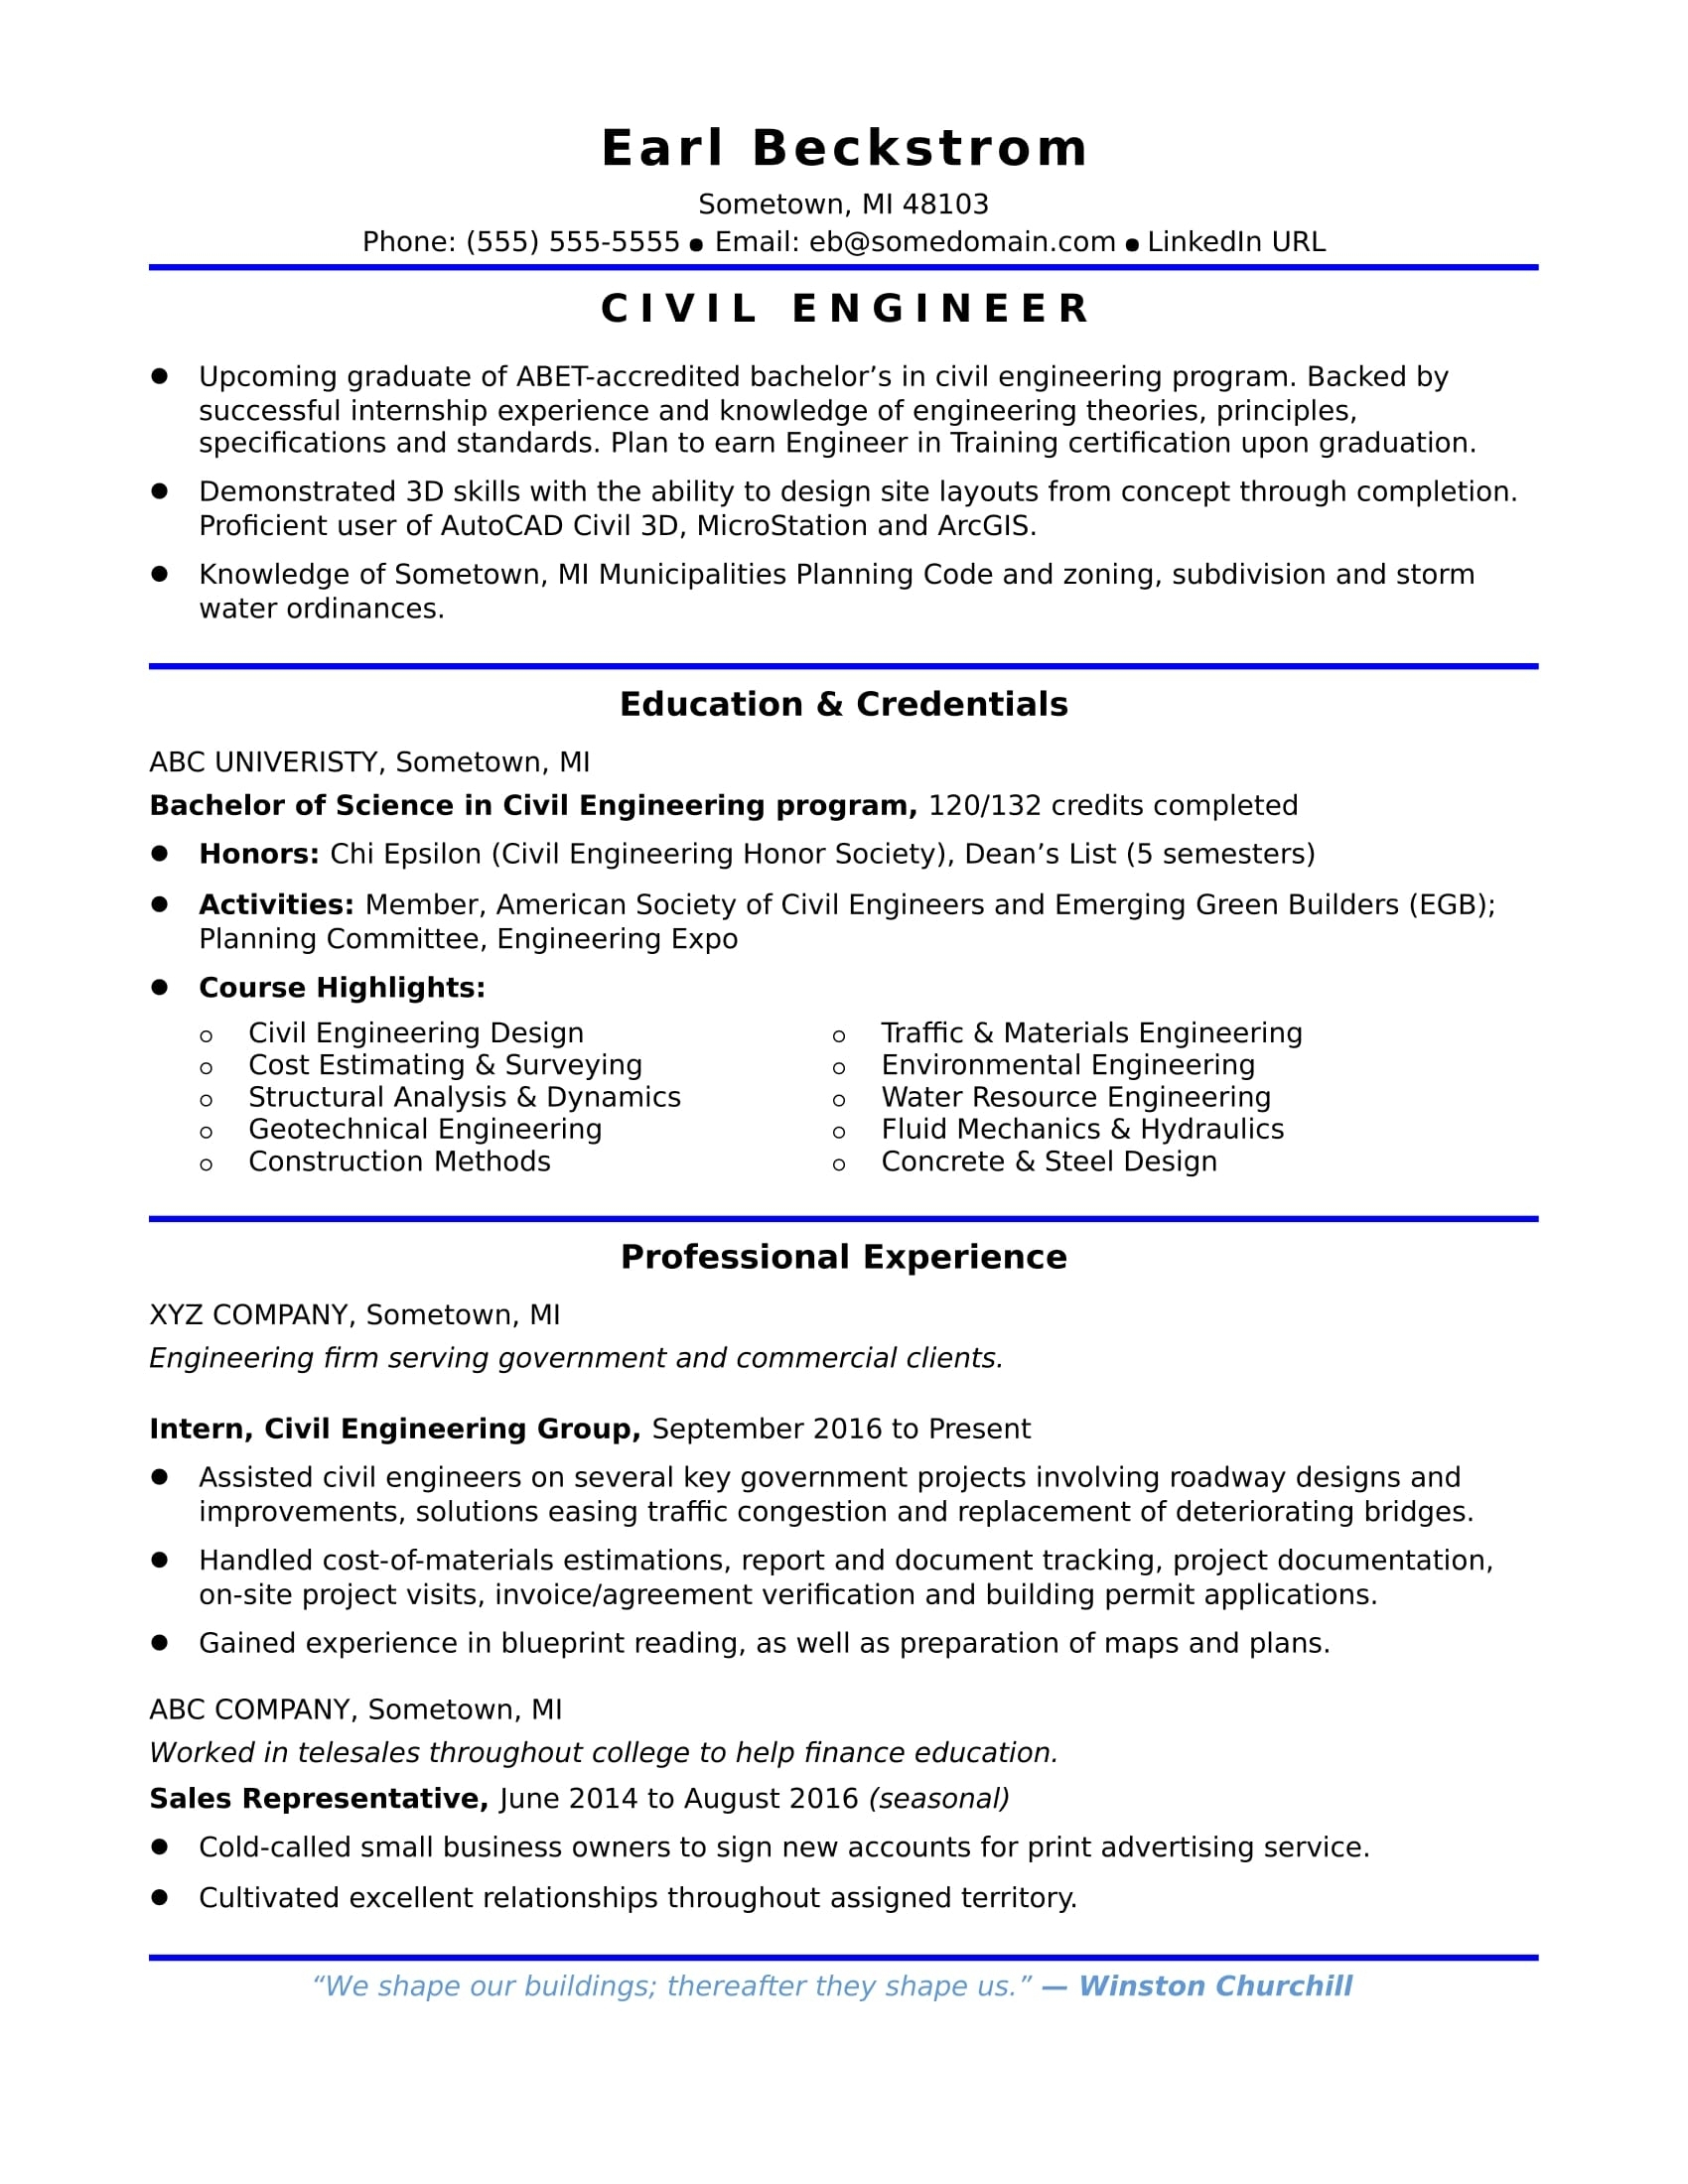 Civil Engineering Student Resume